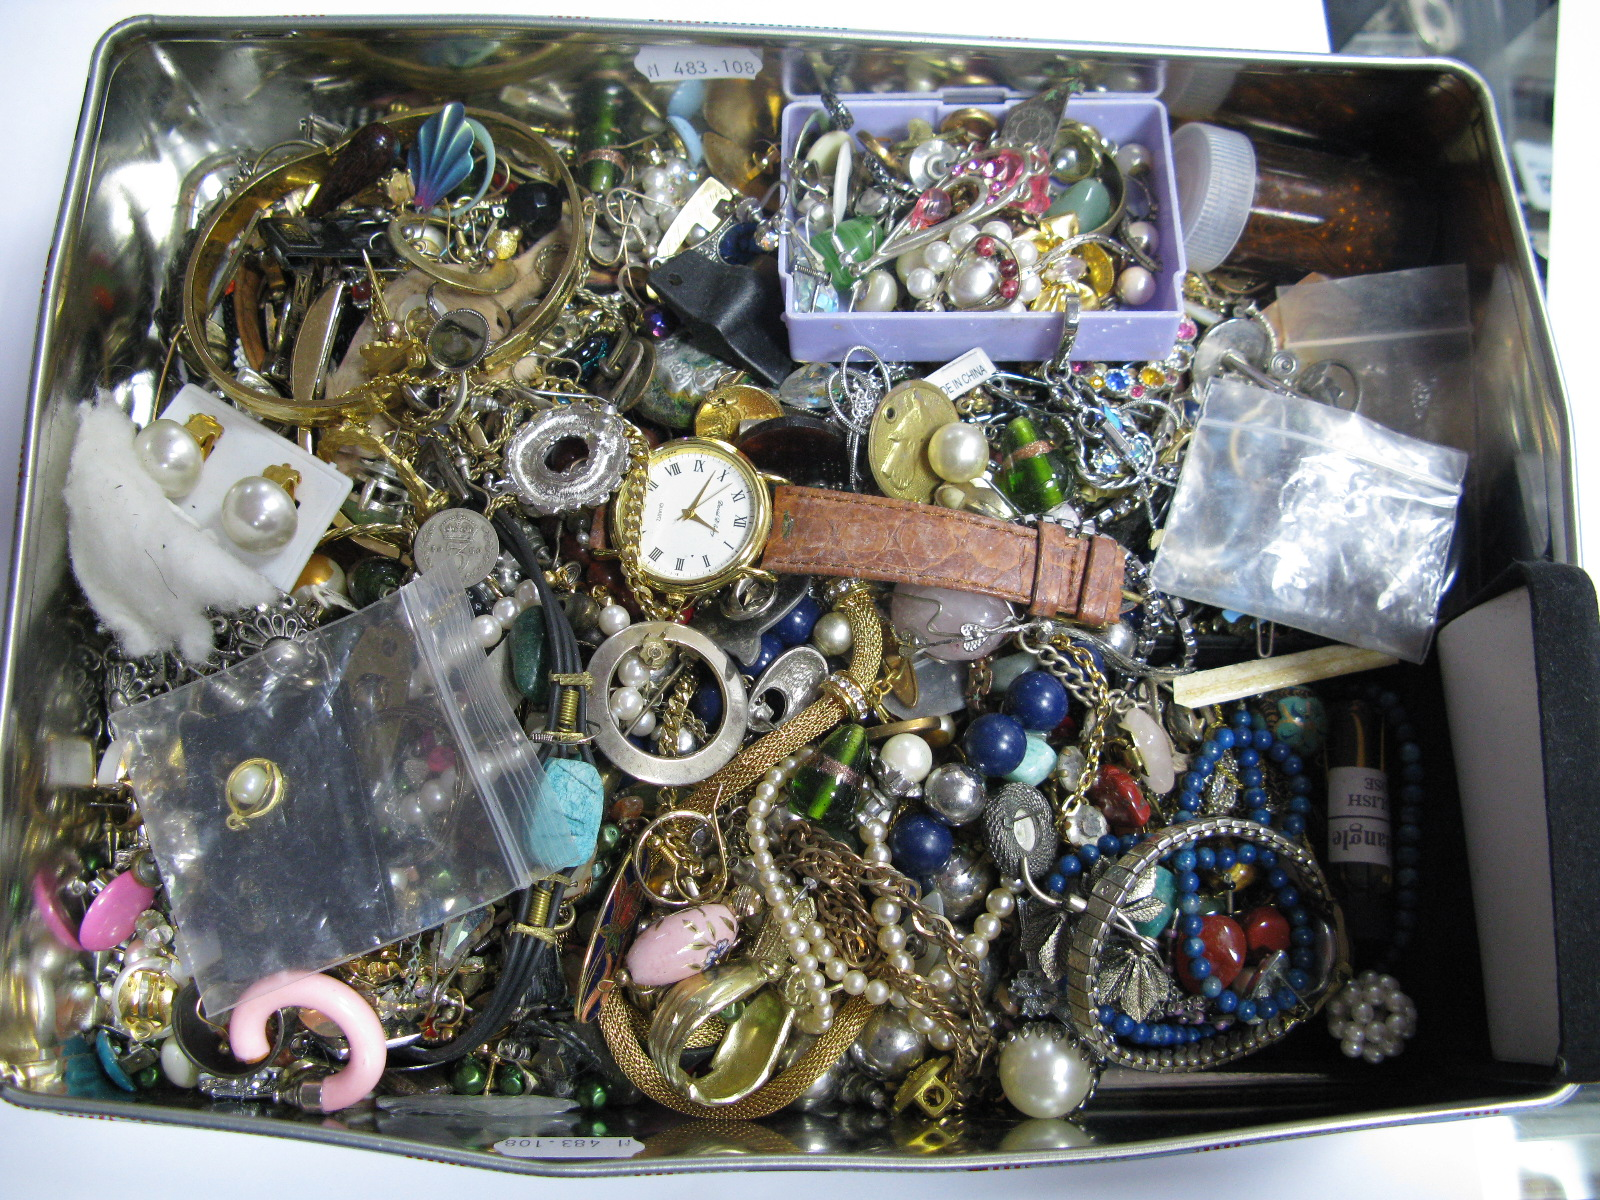 Lot 1265 - A Mixed Lot of Assorted Costume Jewellery, including earrings, beads, wristwatch, etc:- One Box